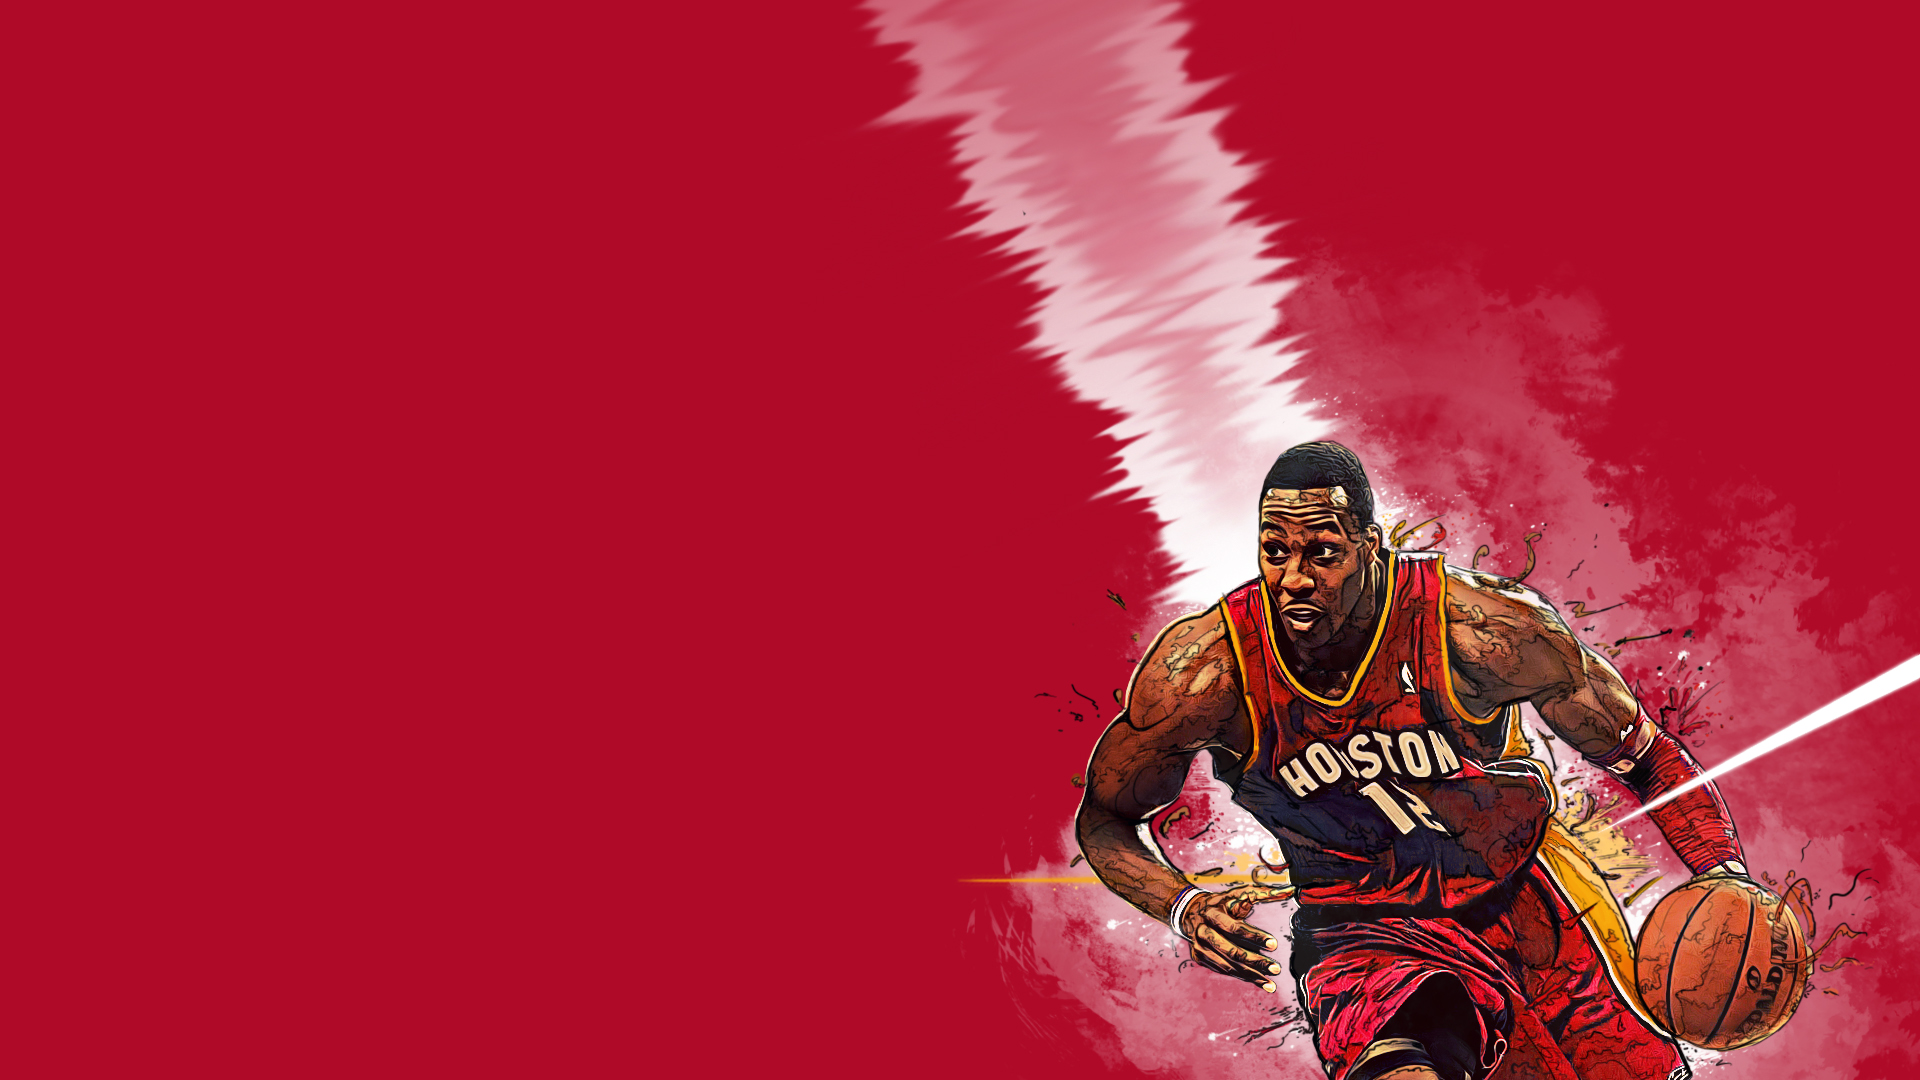 dwight howard houston rockets wallpaper by nemac86 on